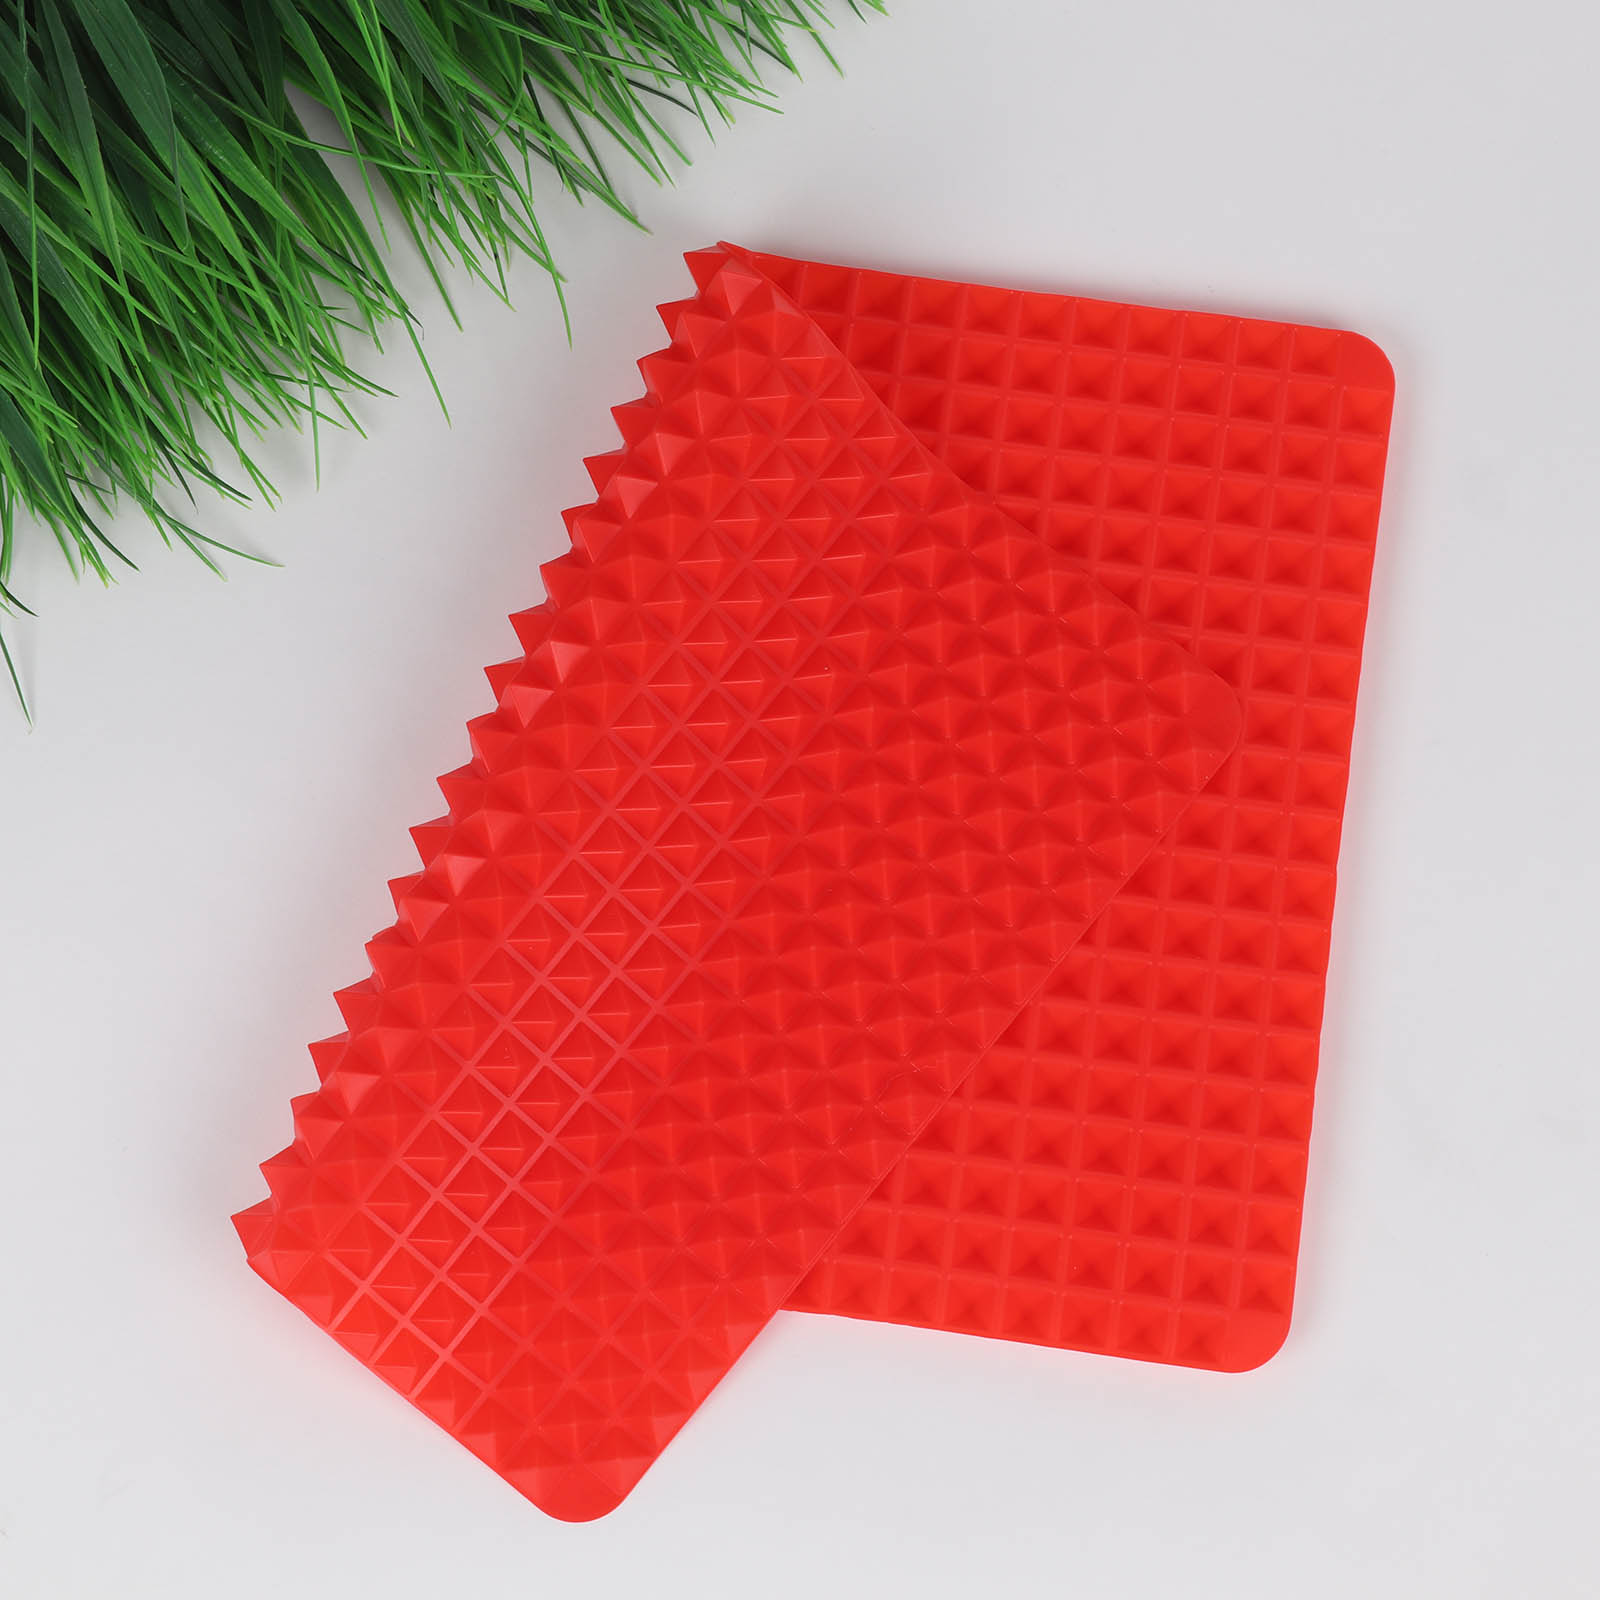 3 Colors Silicone Baking Mat In Non Toxic And High Temperature Resistance For Chocolate And Jelly Pudding 17